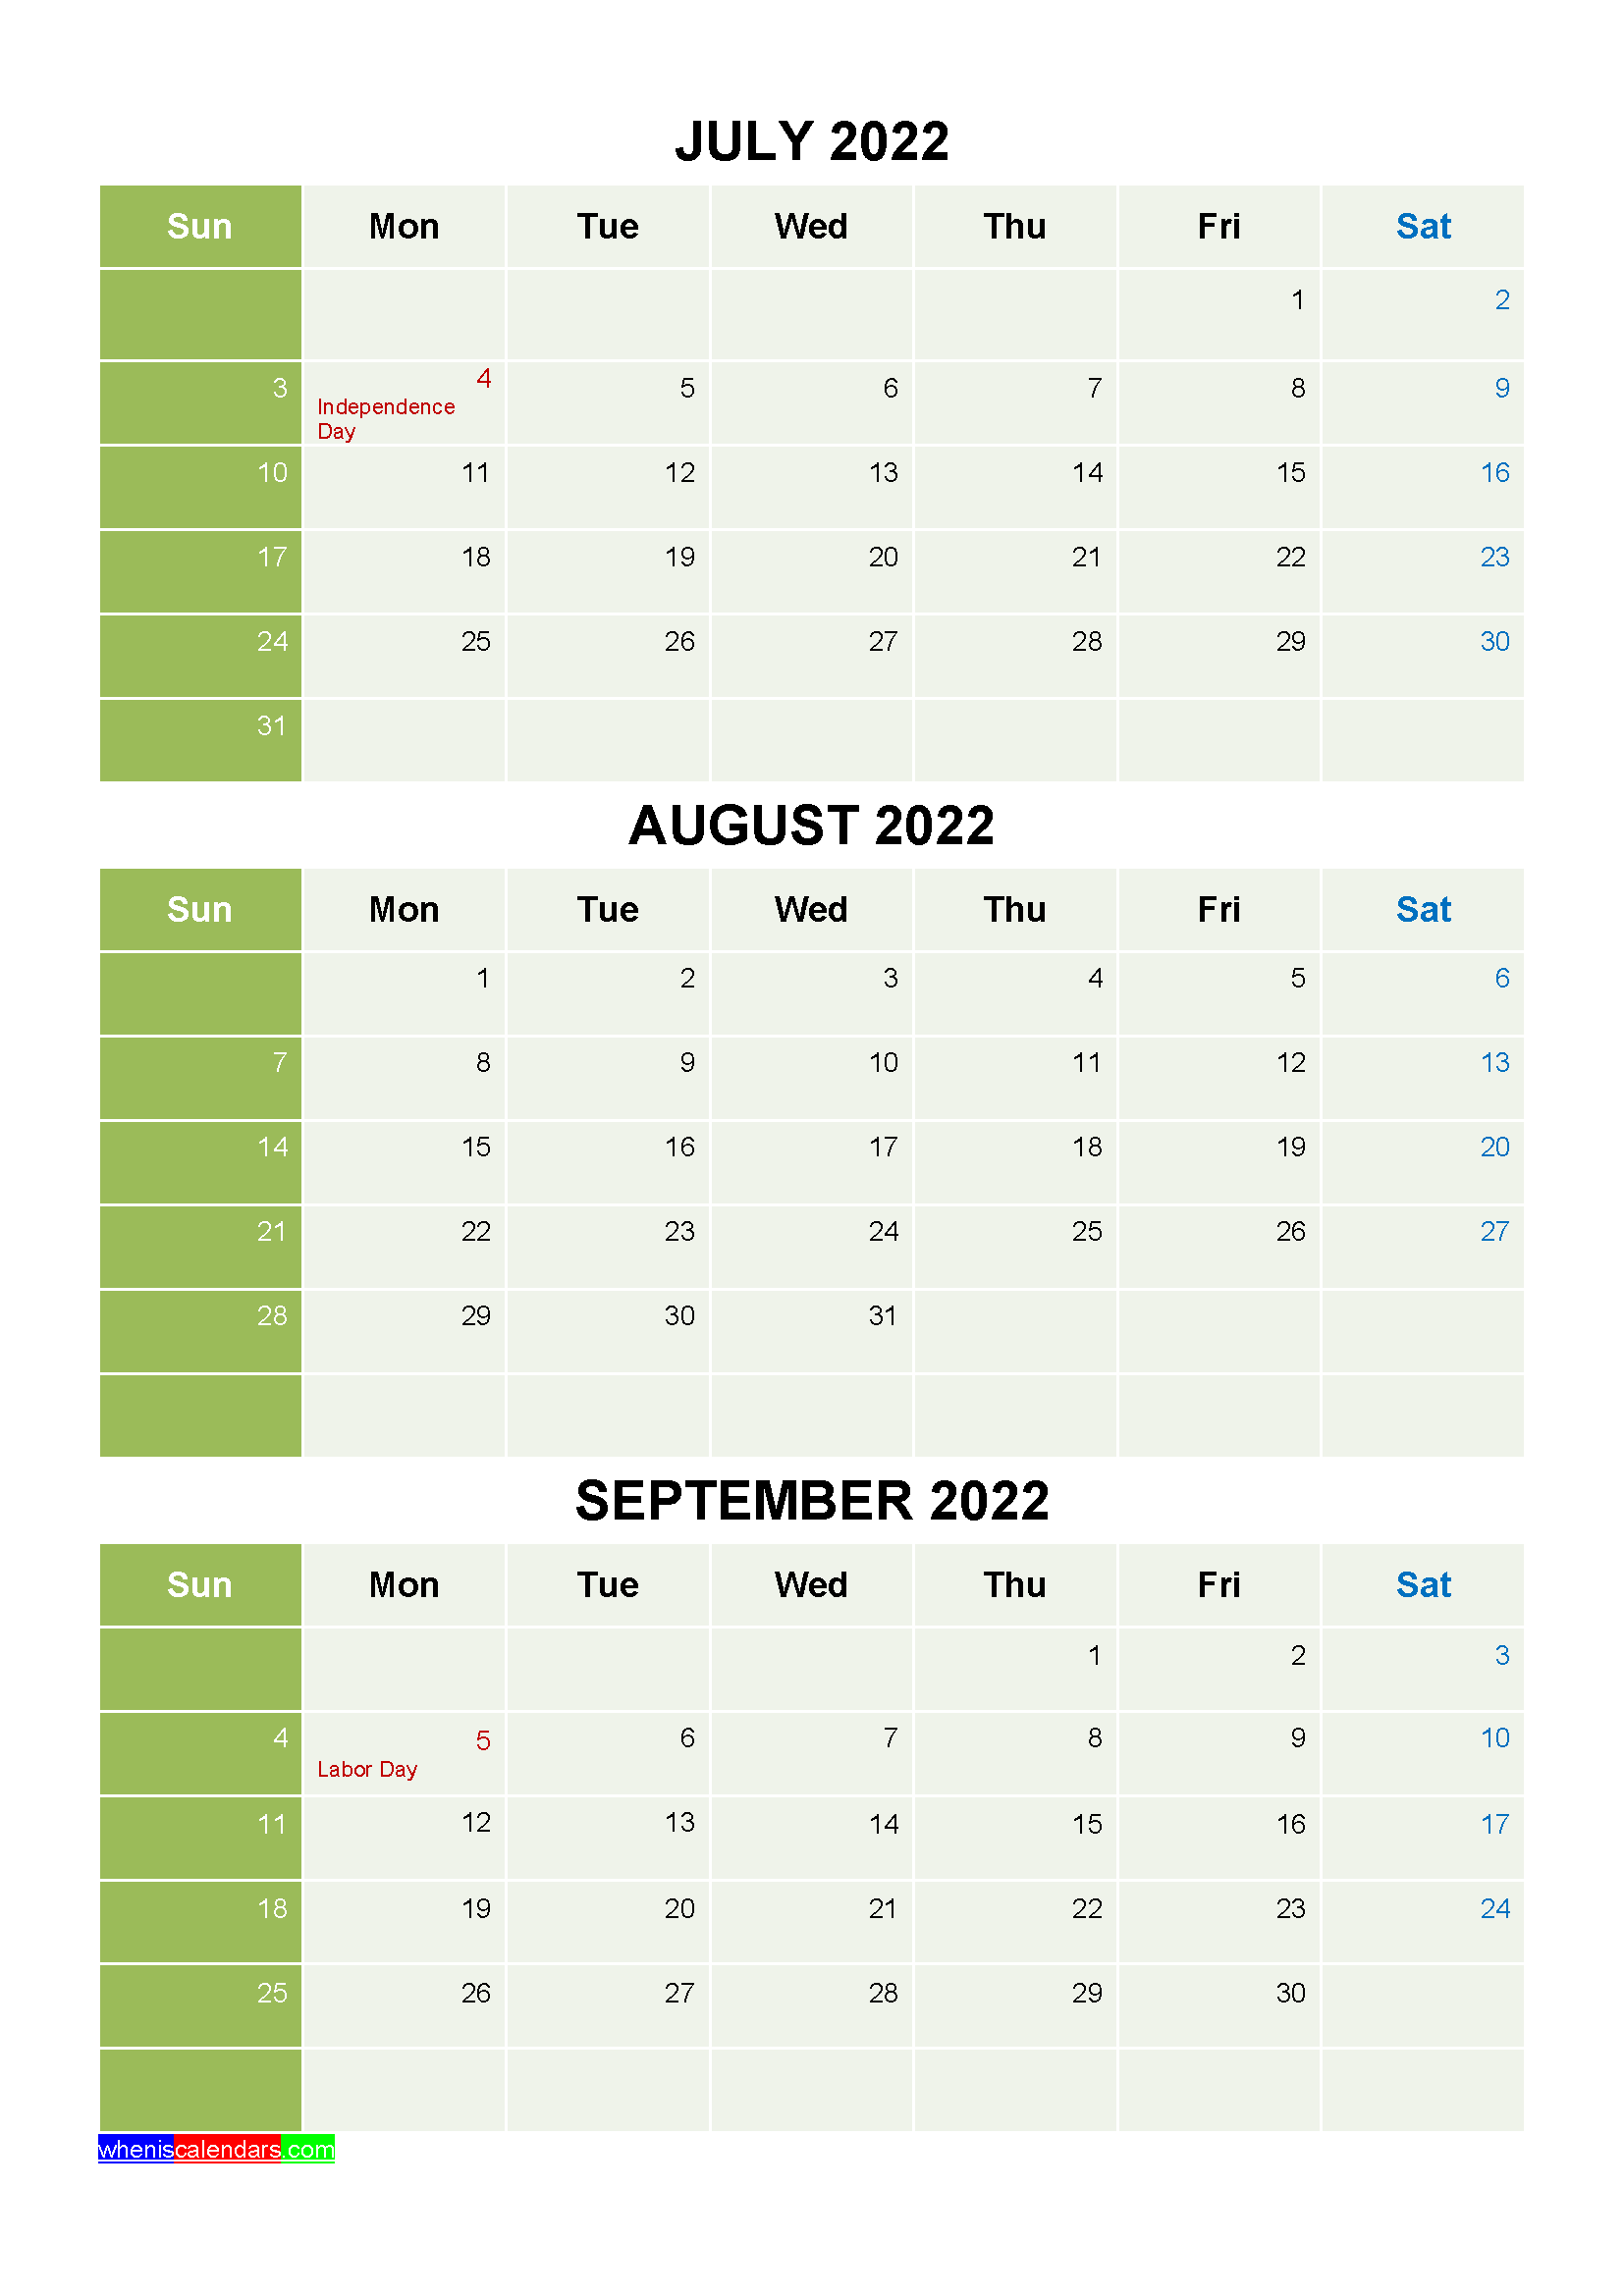 Printable Calendar July August 2022.Free Calendar July August September 2022 With Holidays Four Quarters Calendar Template Free Printable Calendar Calendar Printables